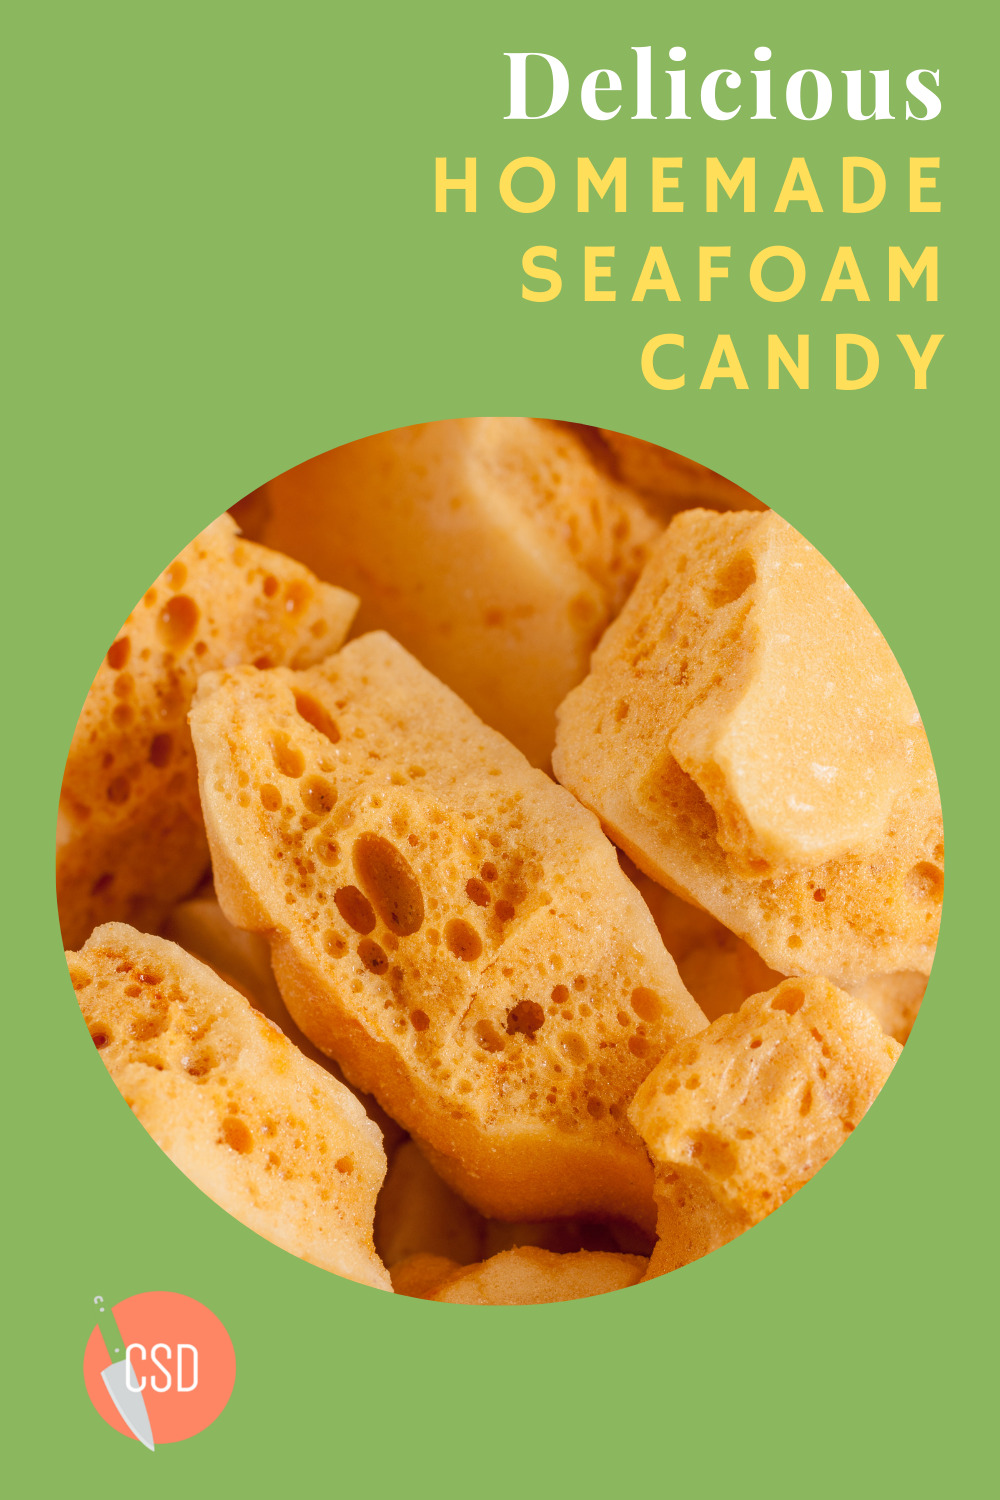 Cutsidedown.com will help you wow your dinner guests with amazing and easy recipes. Find whatever your palette desires with tons of ideas to choose from. Get sweet with this easy recipe for seafoam candy!